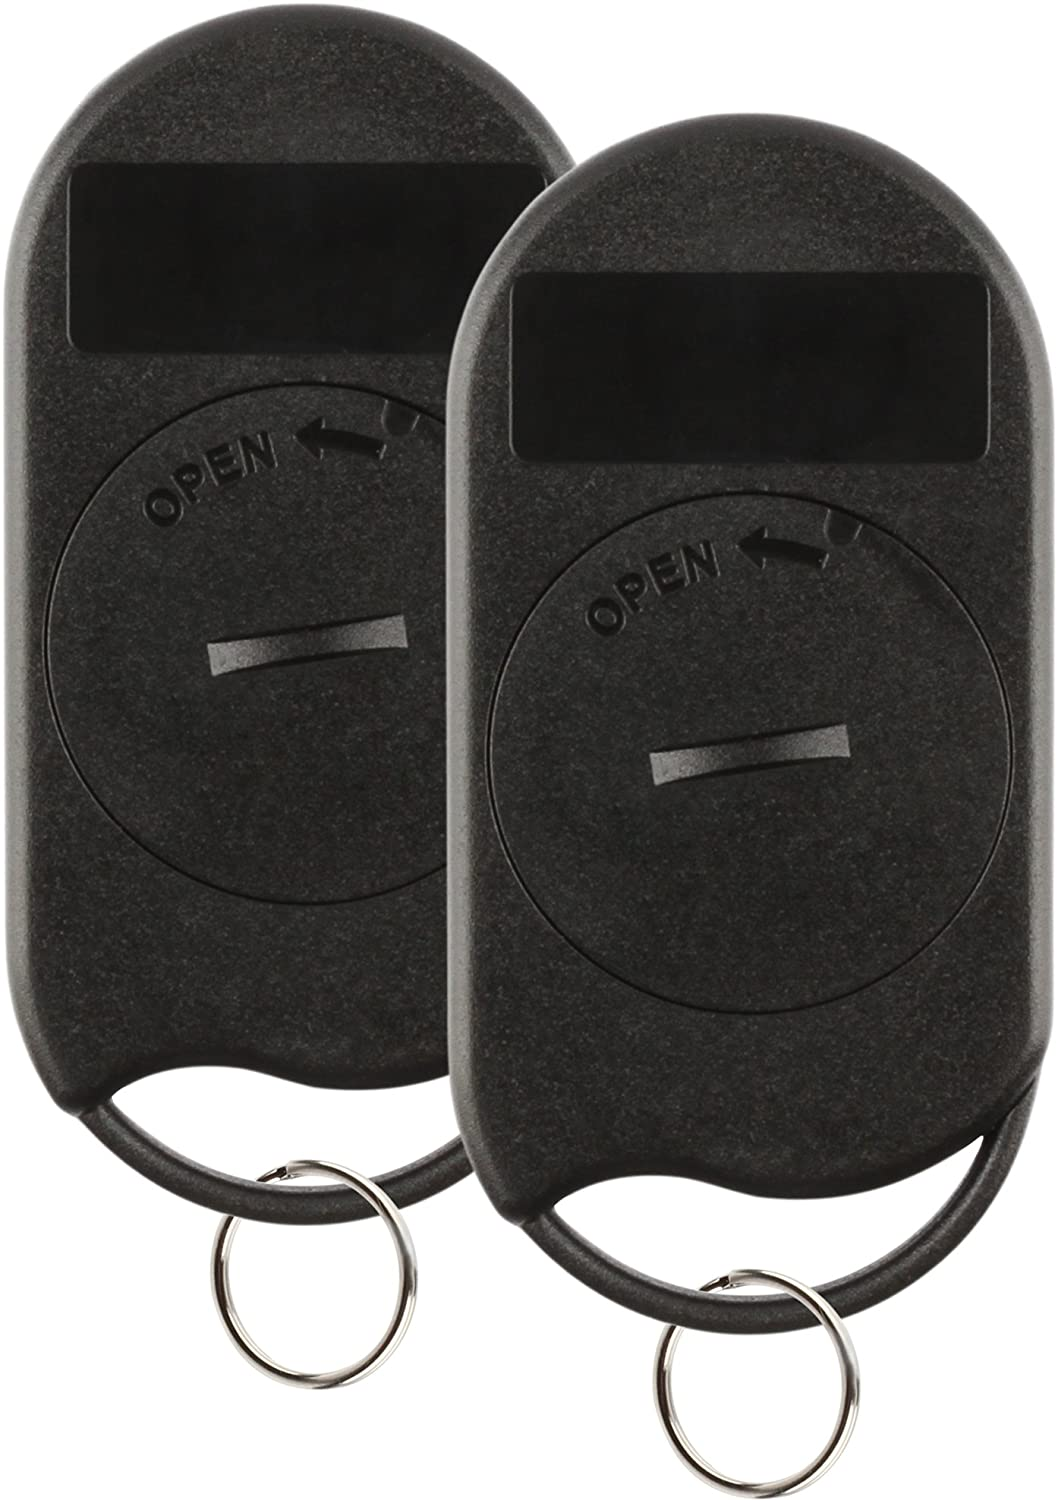 2 Pack Discount Keyless Entry Remote Replacement Car Key Fob For Nissan Maxima Infiniti I30 A269ZJA078